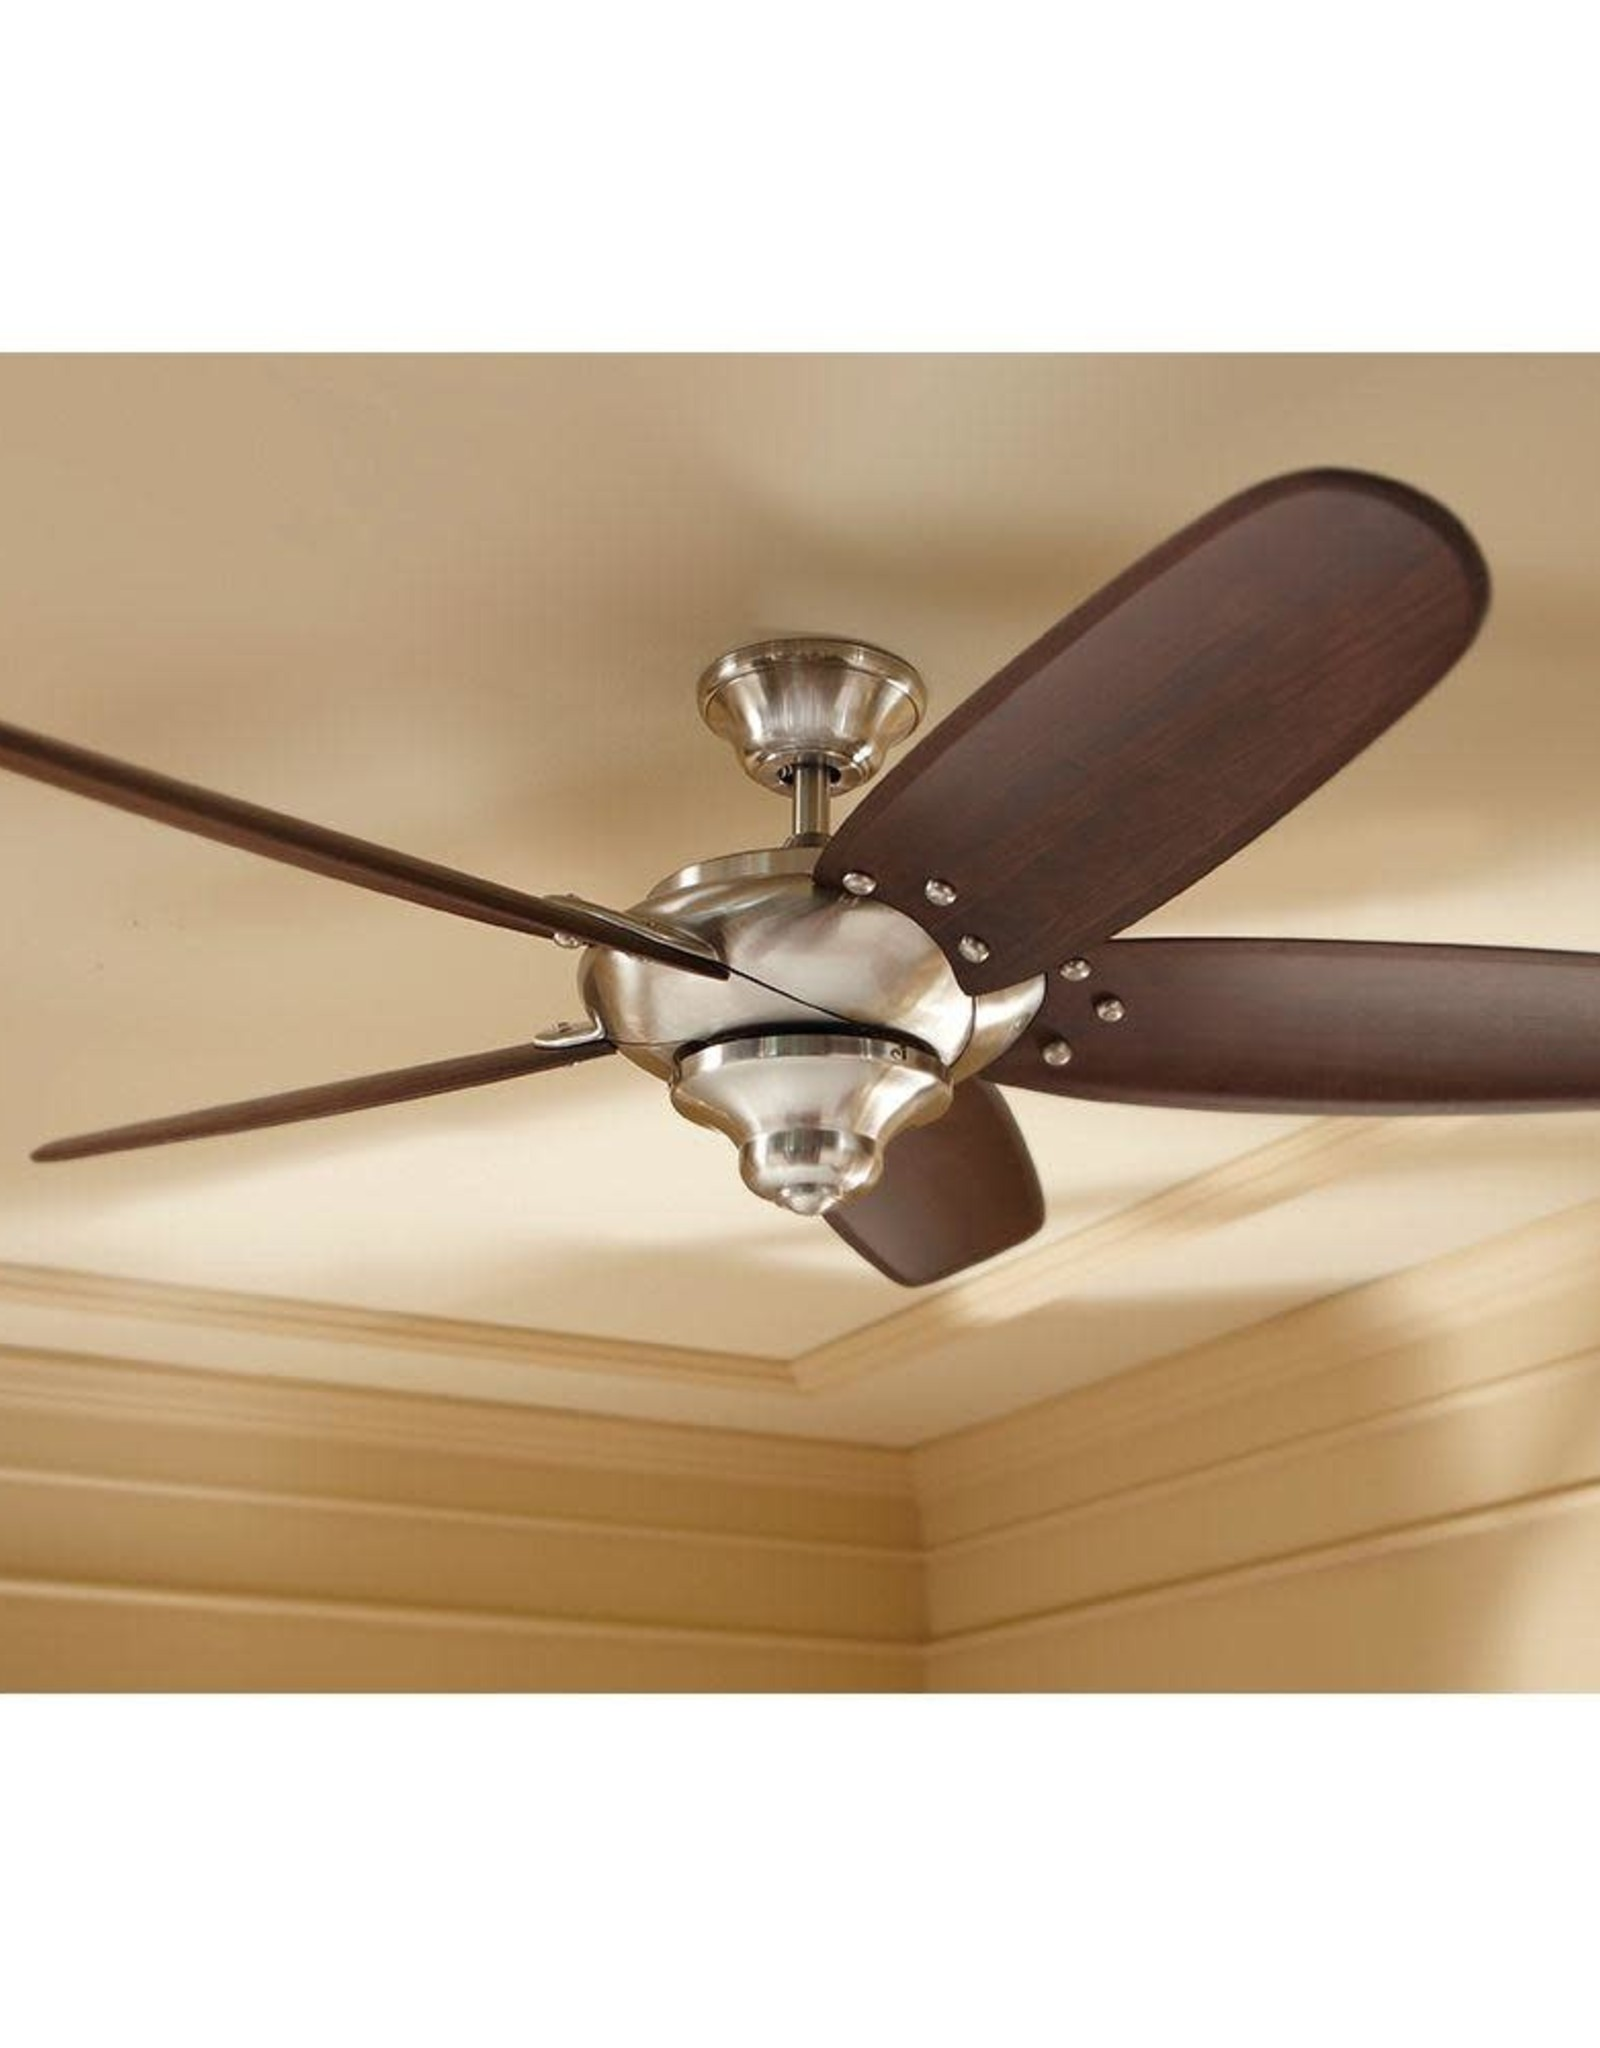 Altura 56 in. Indoor Brushed Nickel Ceiling Fan with Remote Control